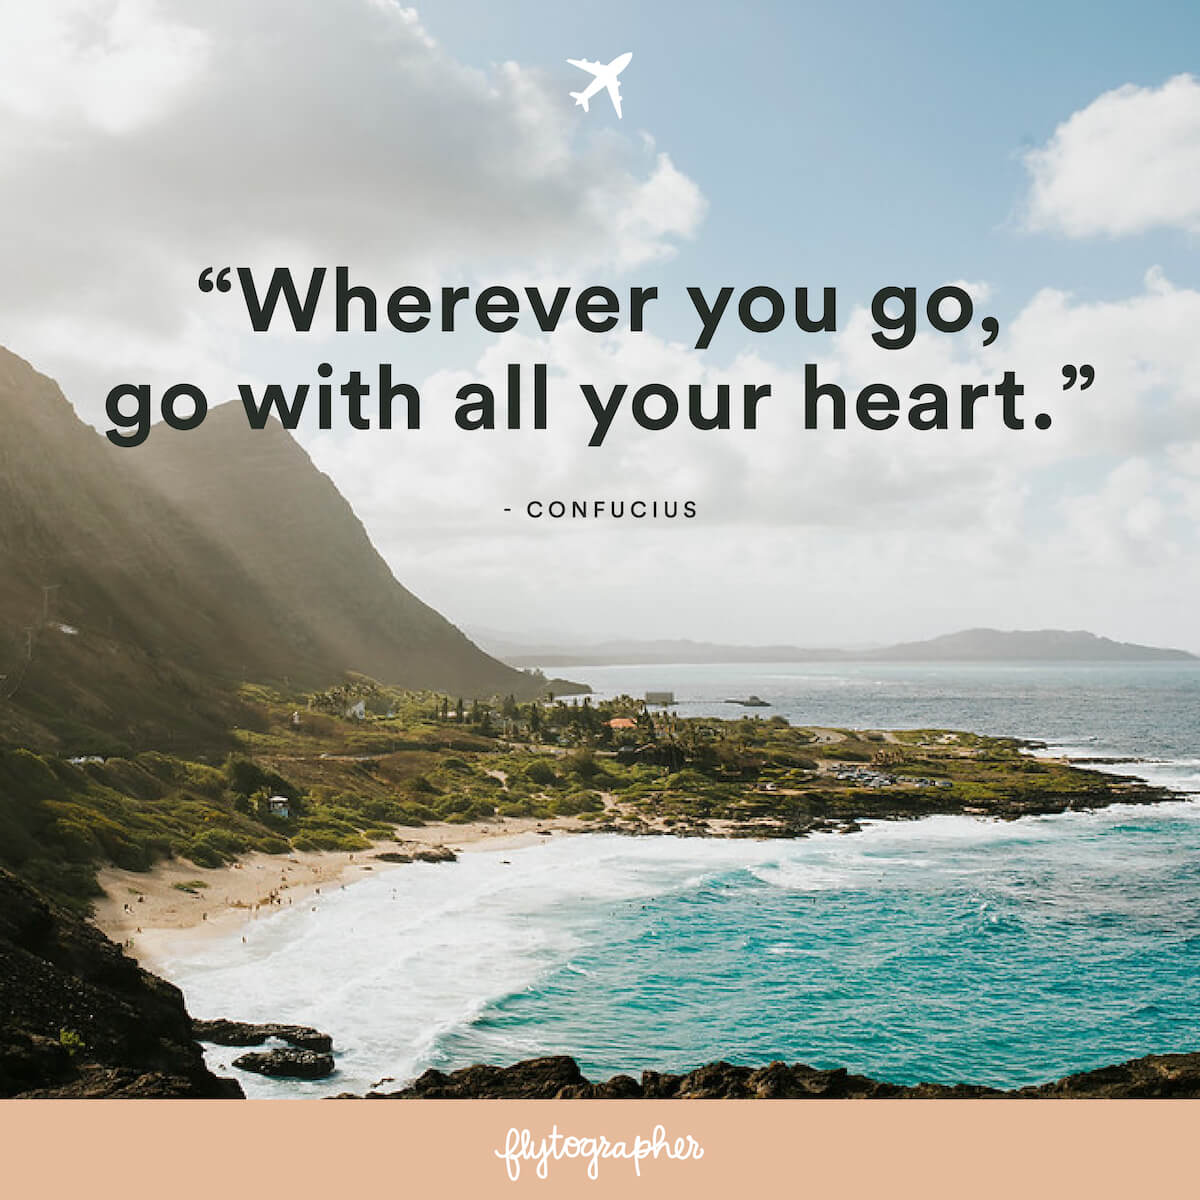 "Travel quote: ""Wherever you go, go with all your heart!"" - Confucius"